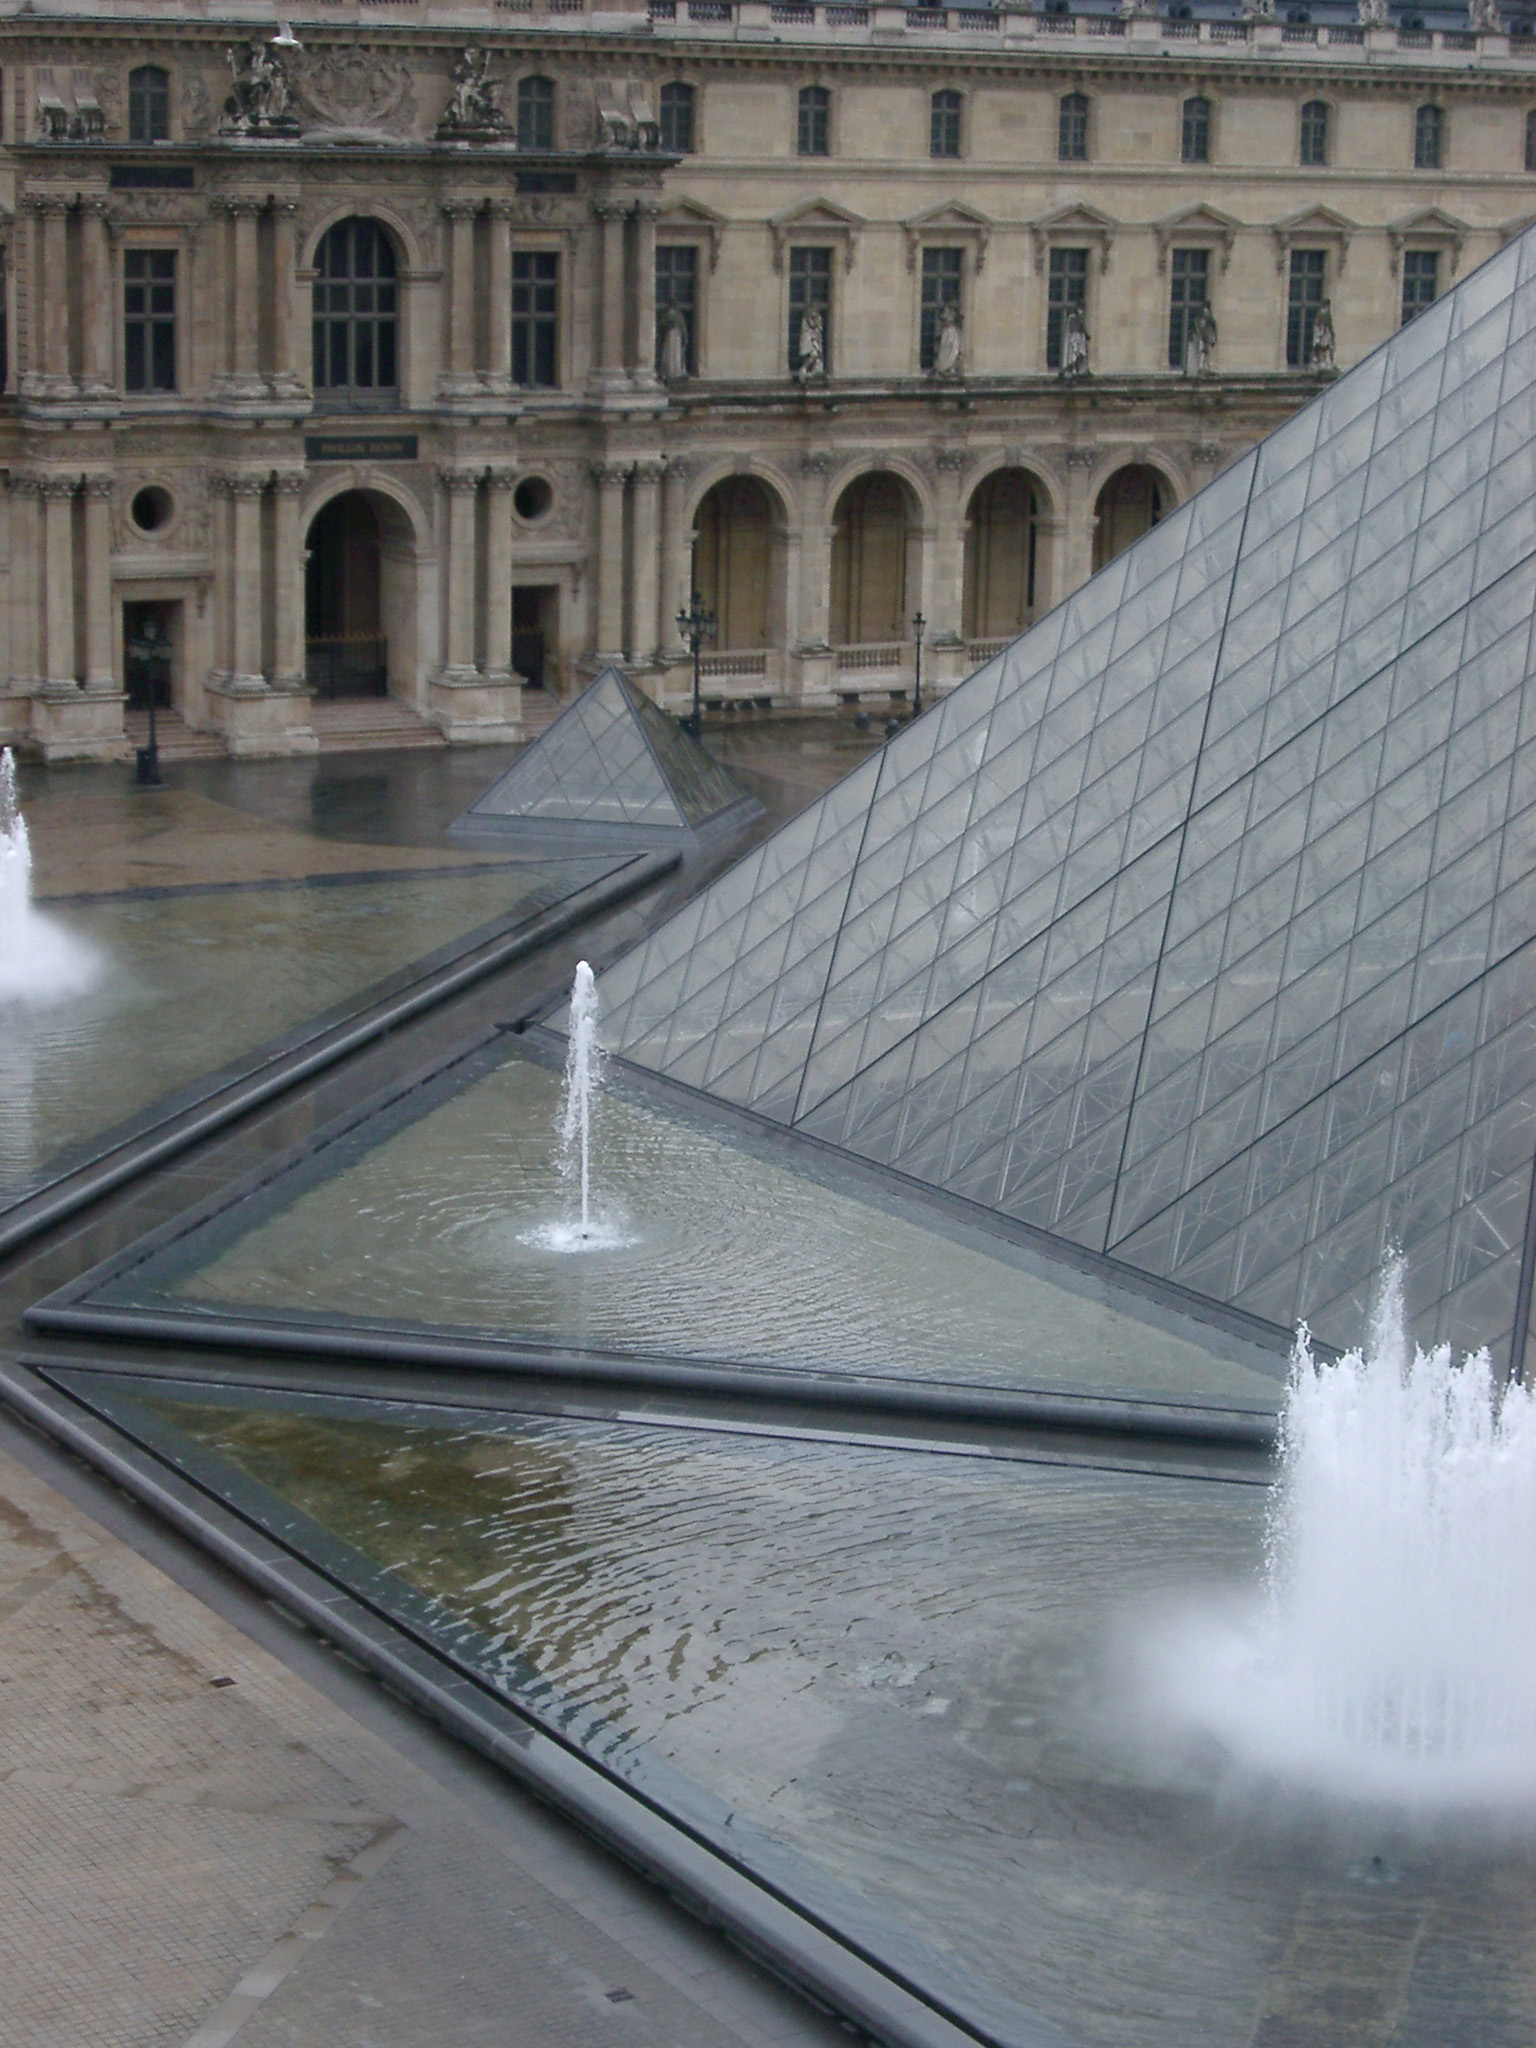 Pyramide Inversee and Water Fountains at Louvre Museum, Paris, France